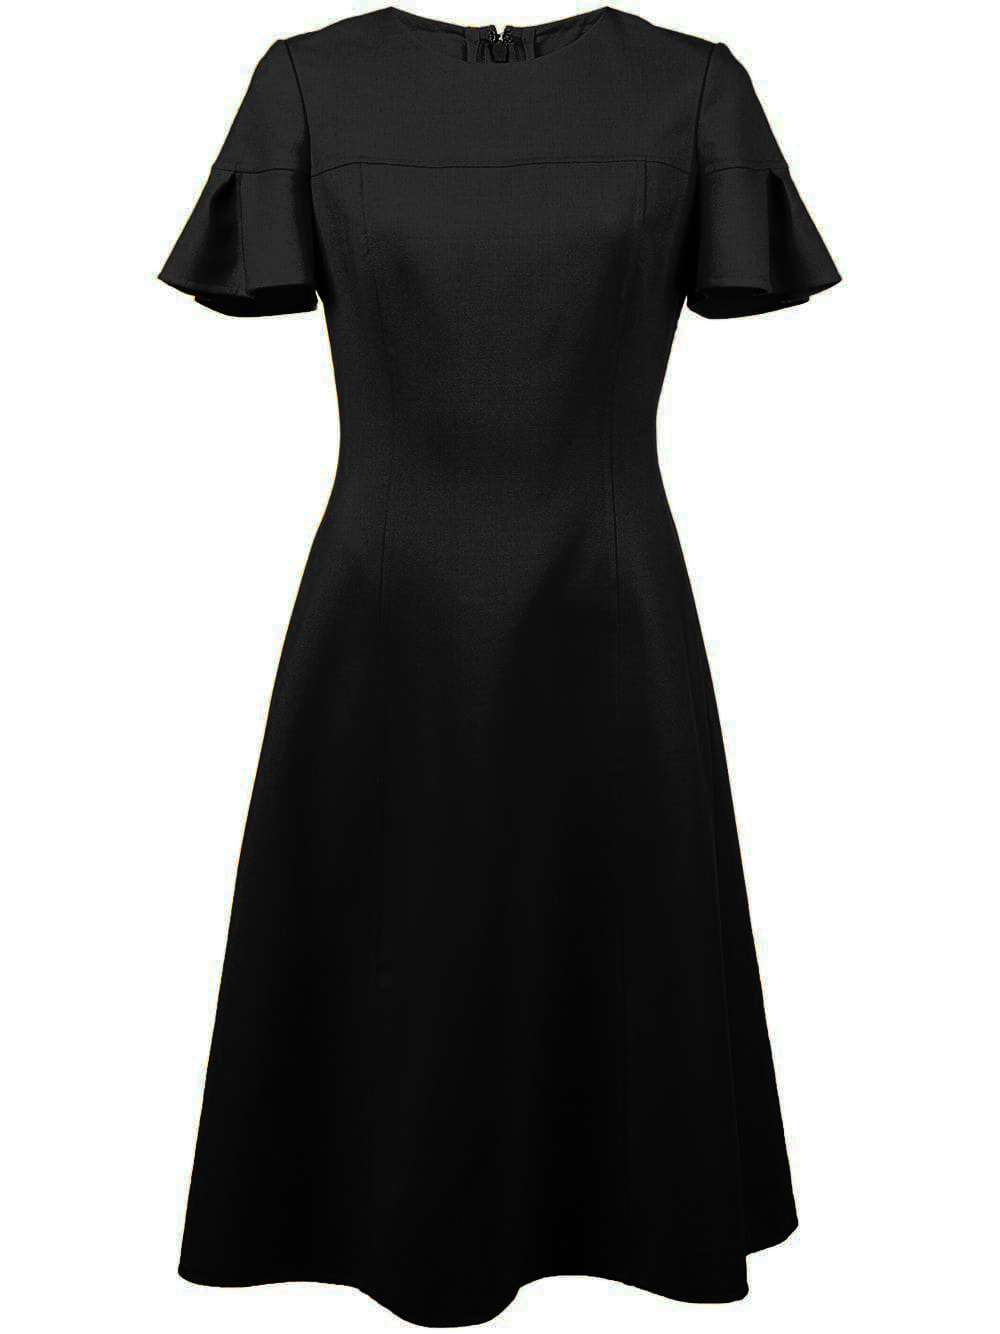 651b256c77b Carolina Herrera black flutter sleeve dress